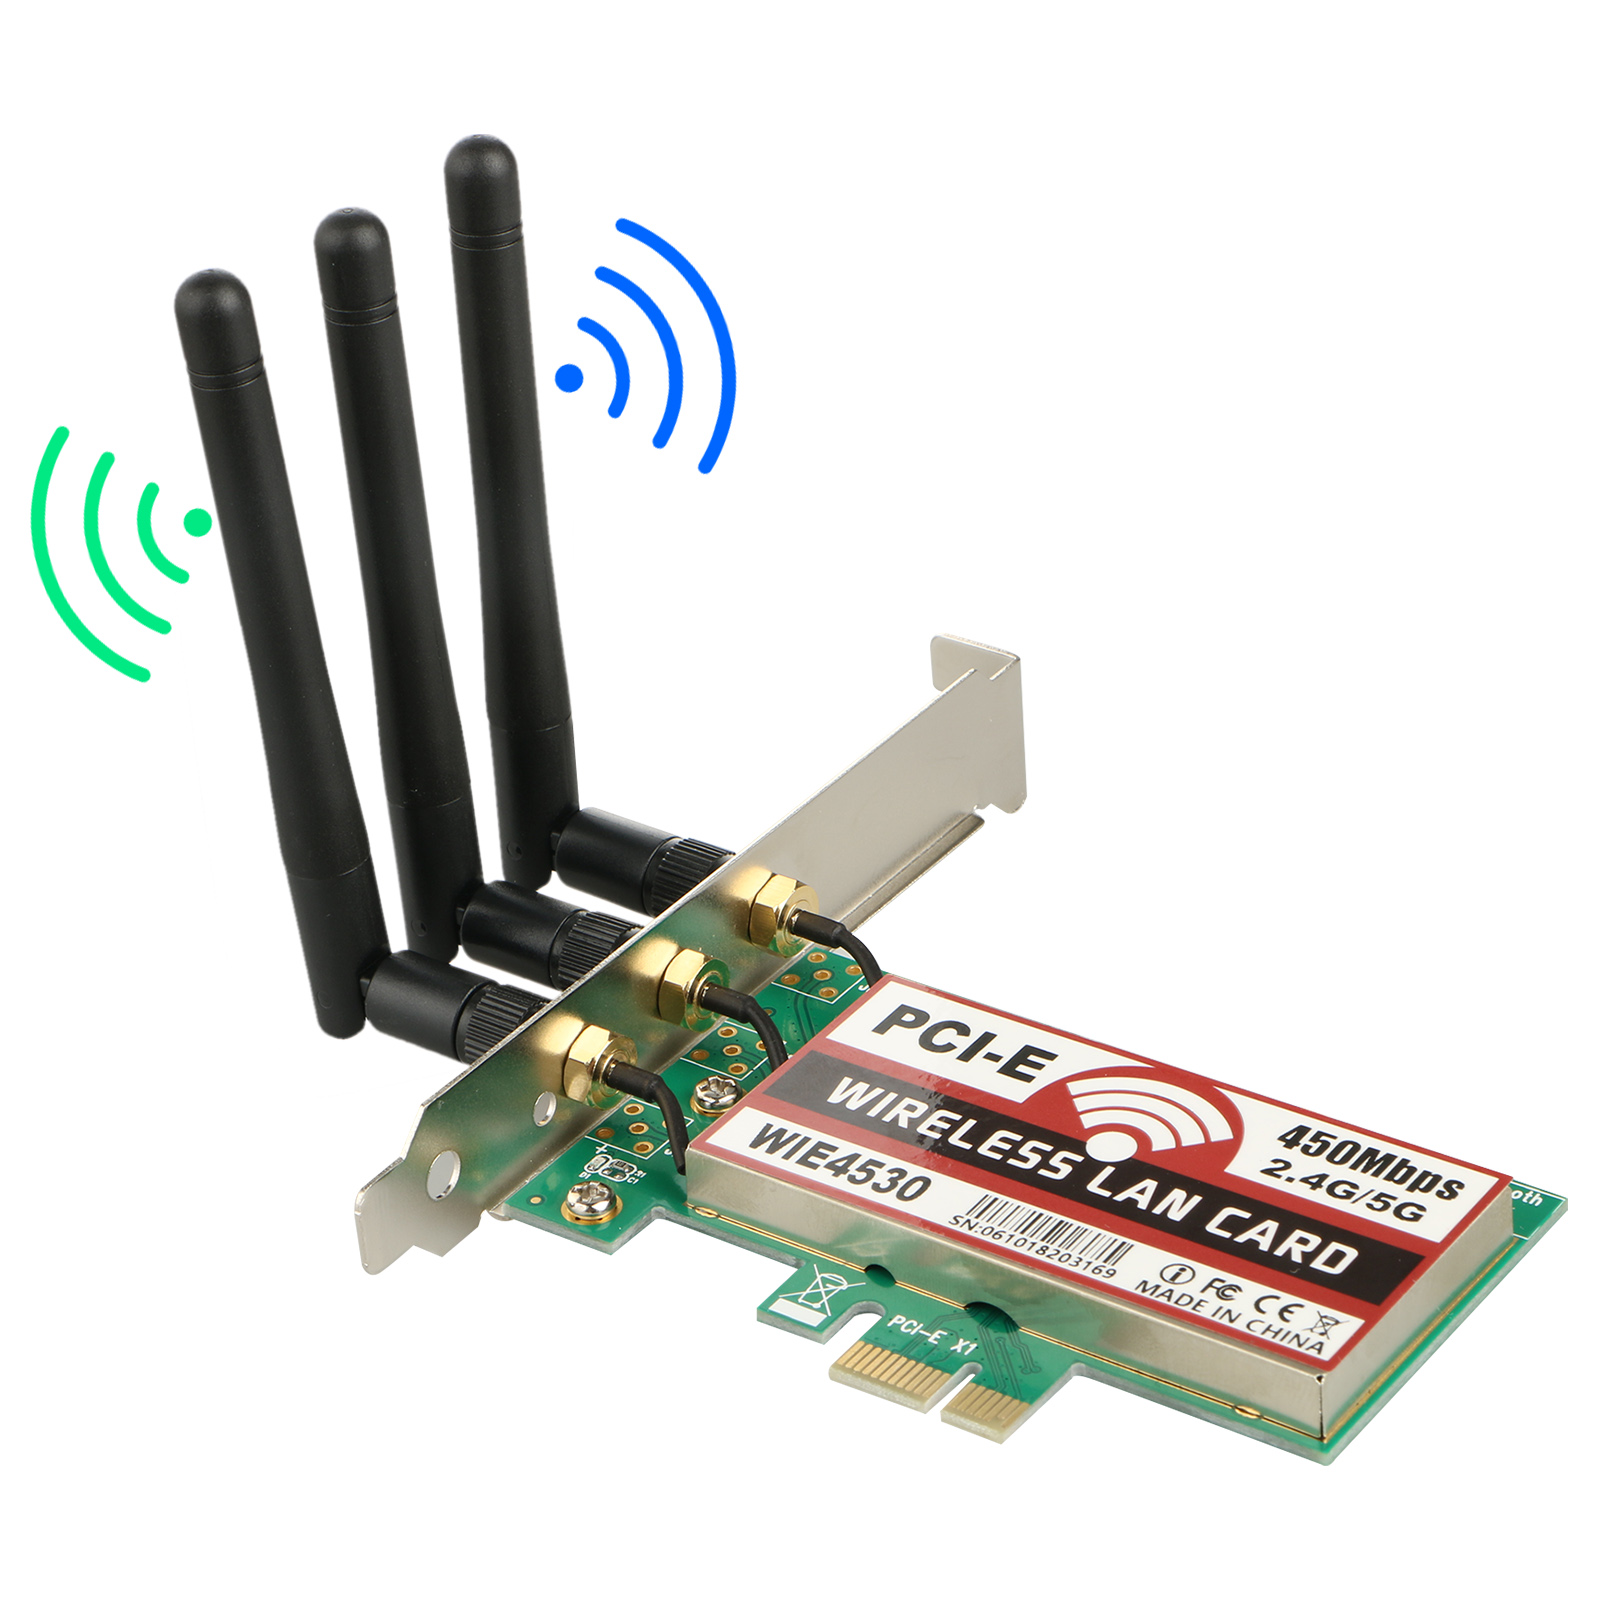 TSV 450Mbps PCI -E WiFi wireless Card Adapter Antennas for Desktop Laptop PC US